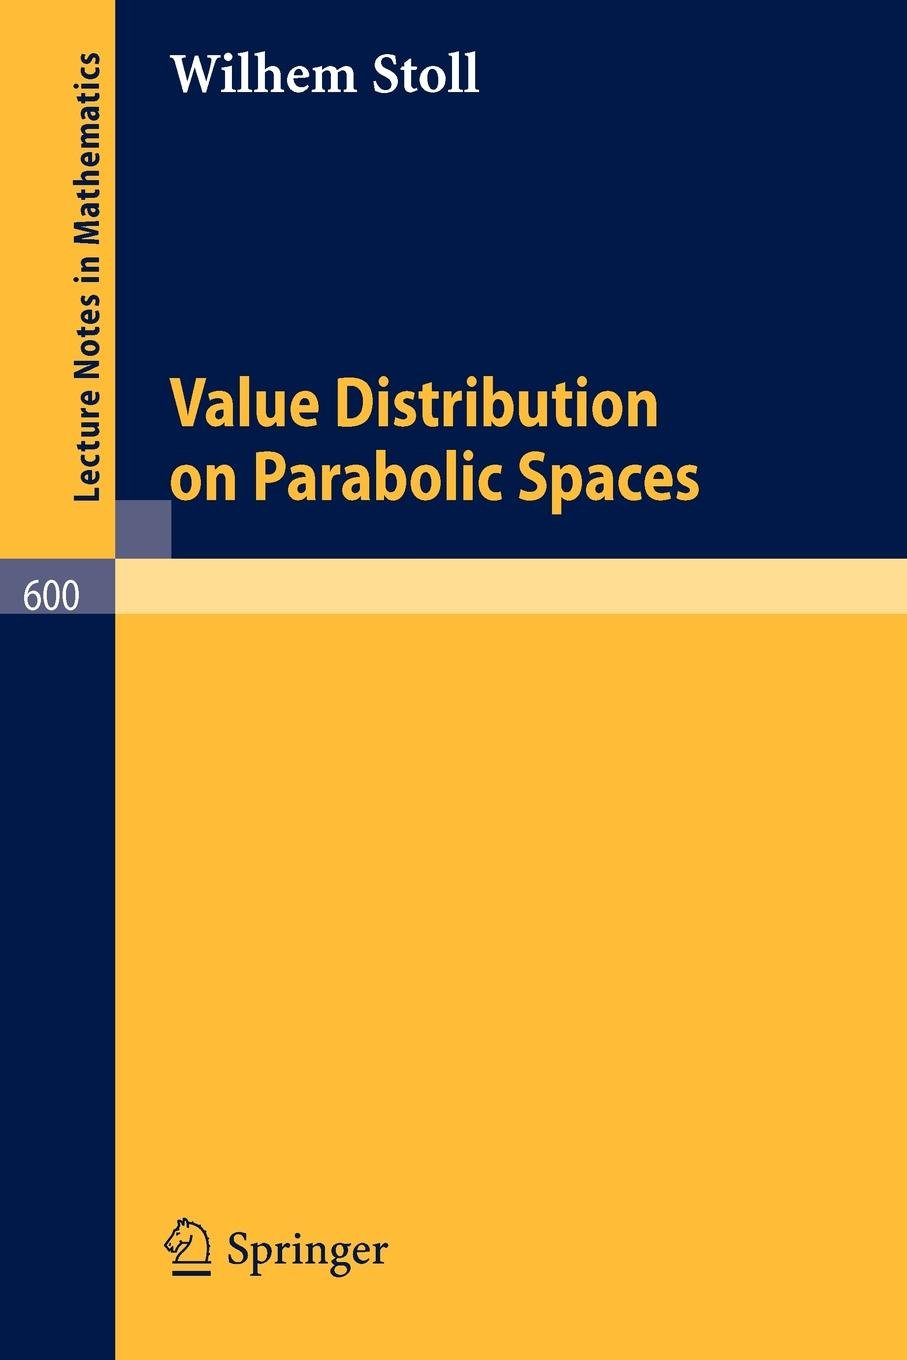 W. Stoll Value Distribution on Parabolic Spaces louis w fry liminal spaces and call for praxis ing